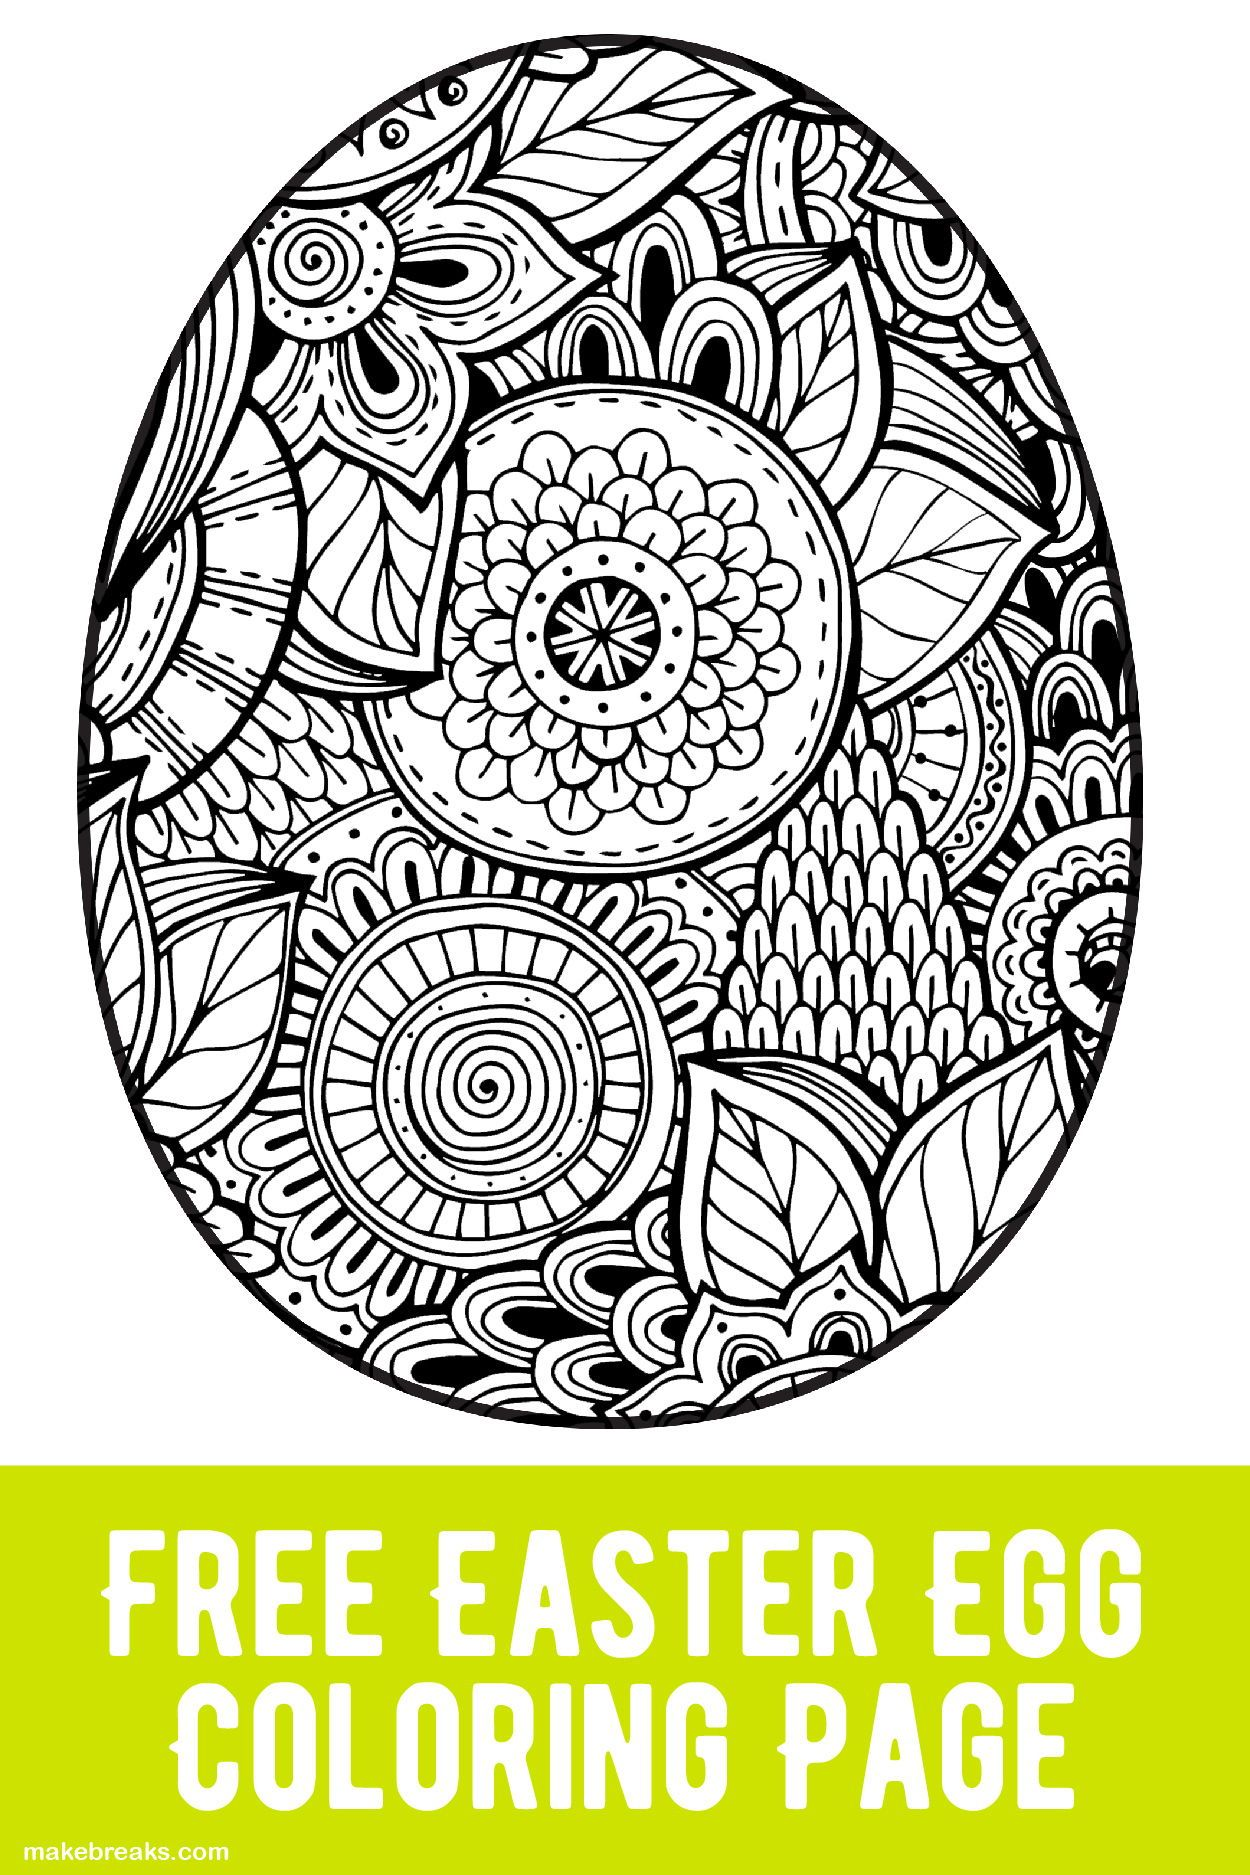 Free Easter Egg Coloring Page Make Breaks Easter Egg Coloring Pages Coloring Easter Eggs Easter Coloring Pages Printable